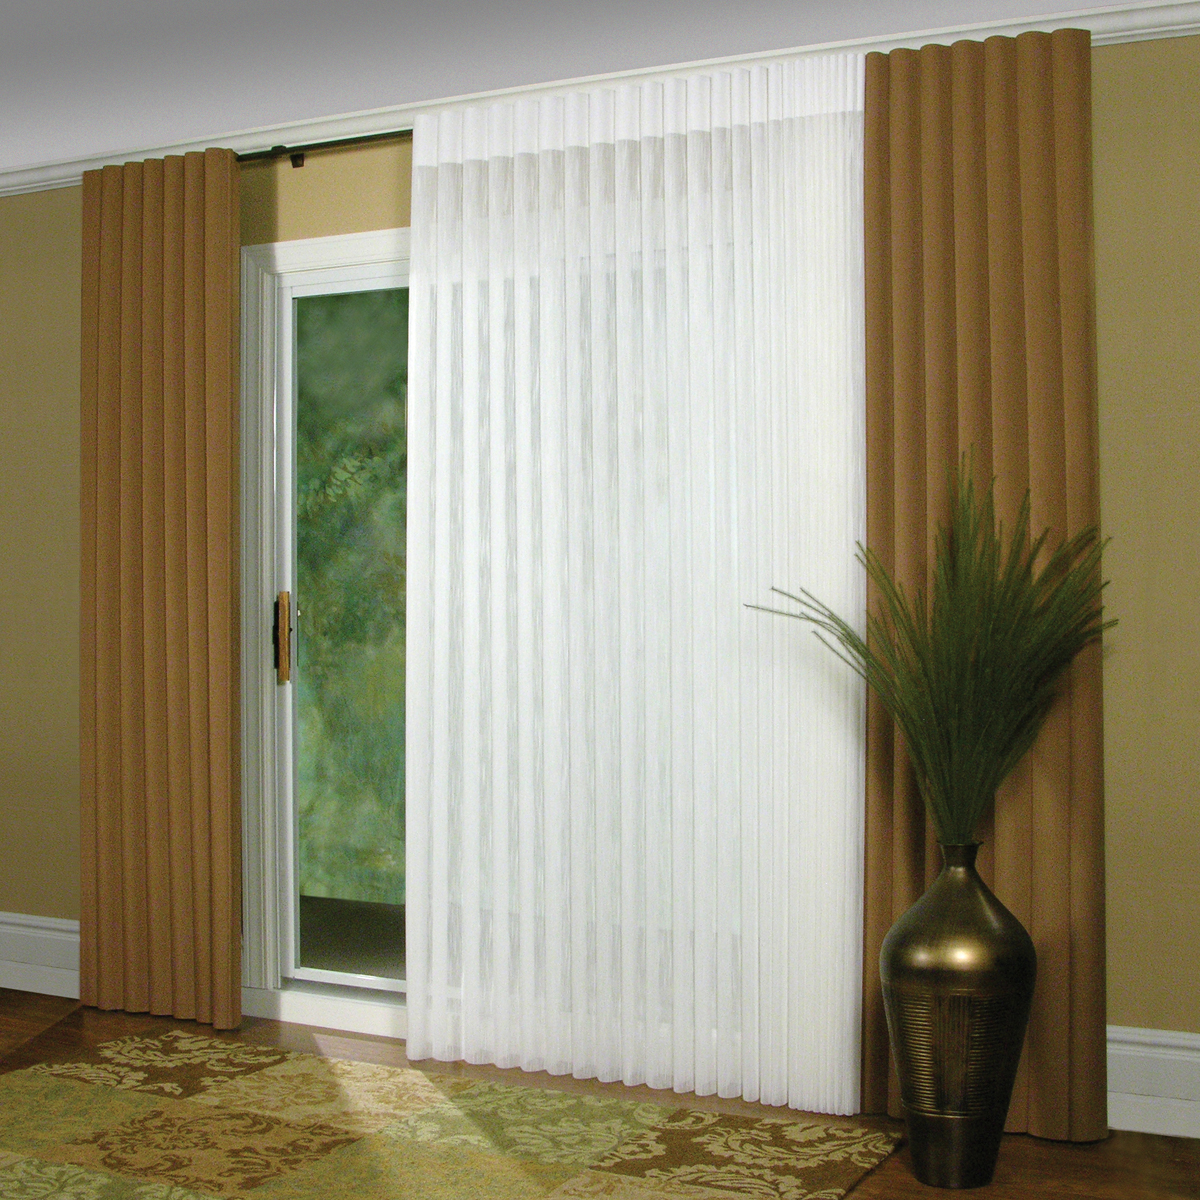 curtains for sliding glass doors with vertical blinds image of: patio blinds for sliding glass doors DGBKRMO